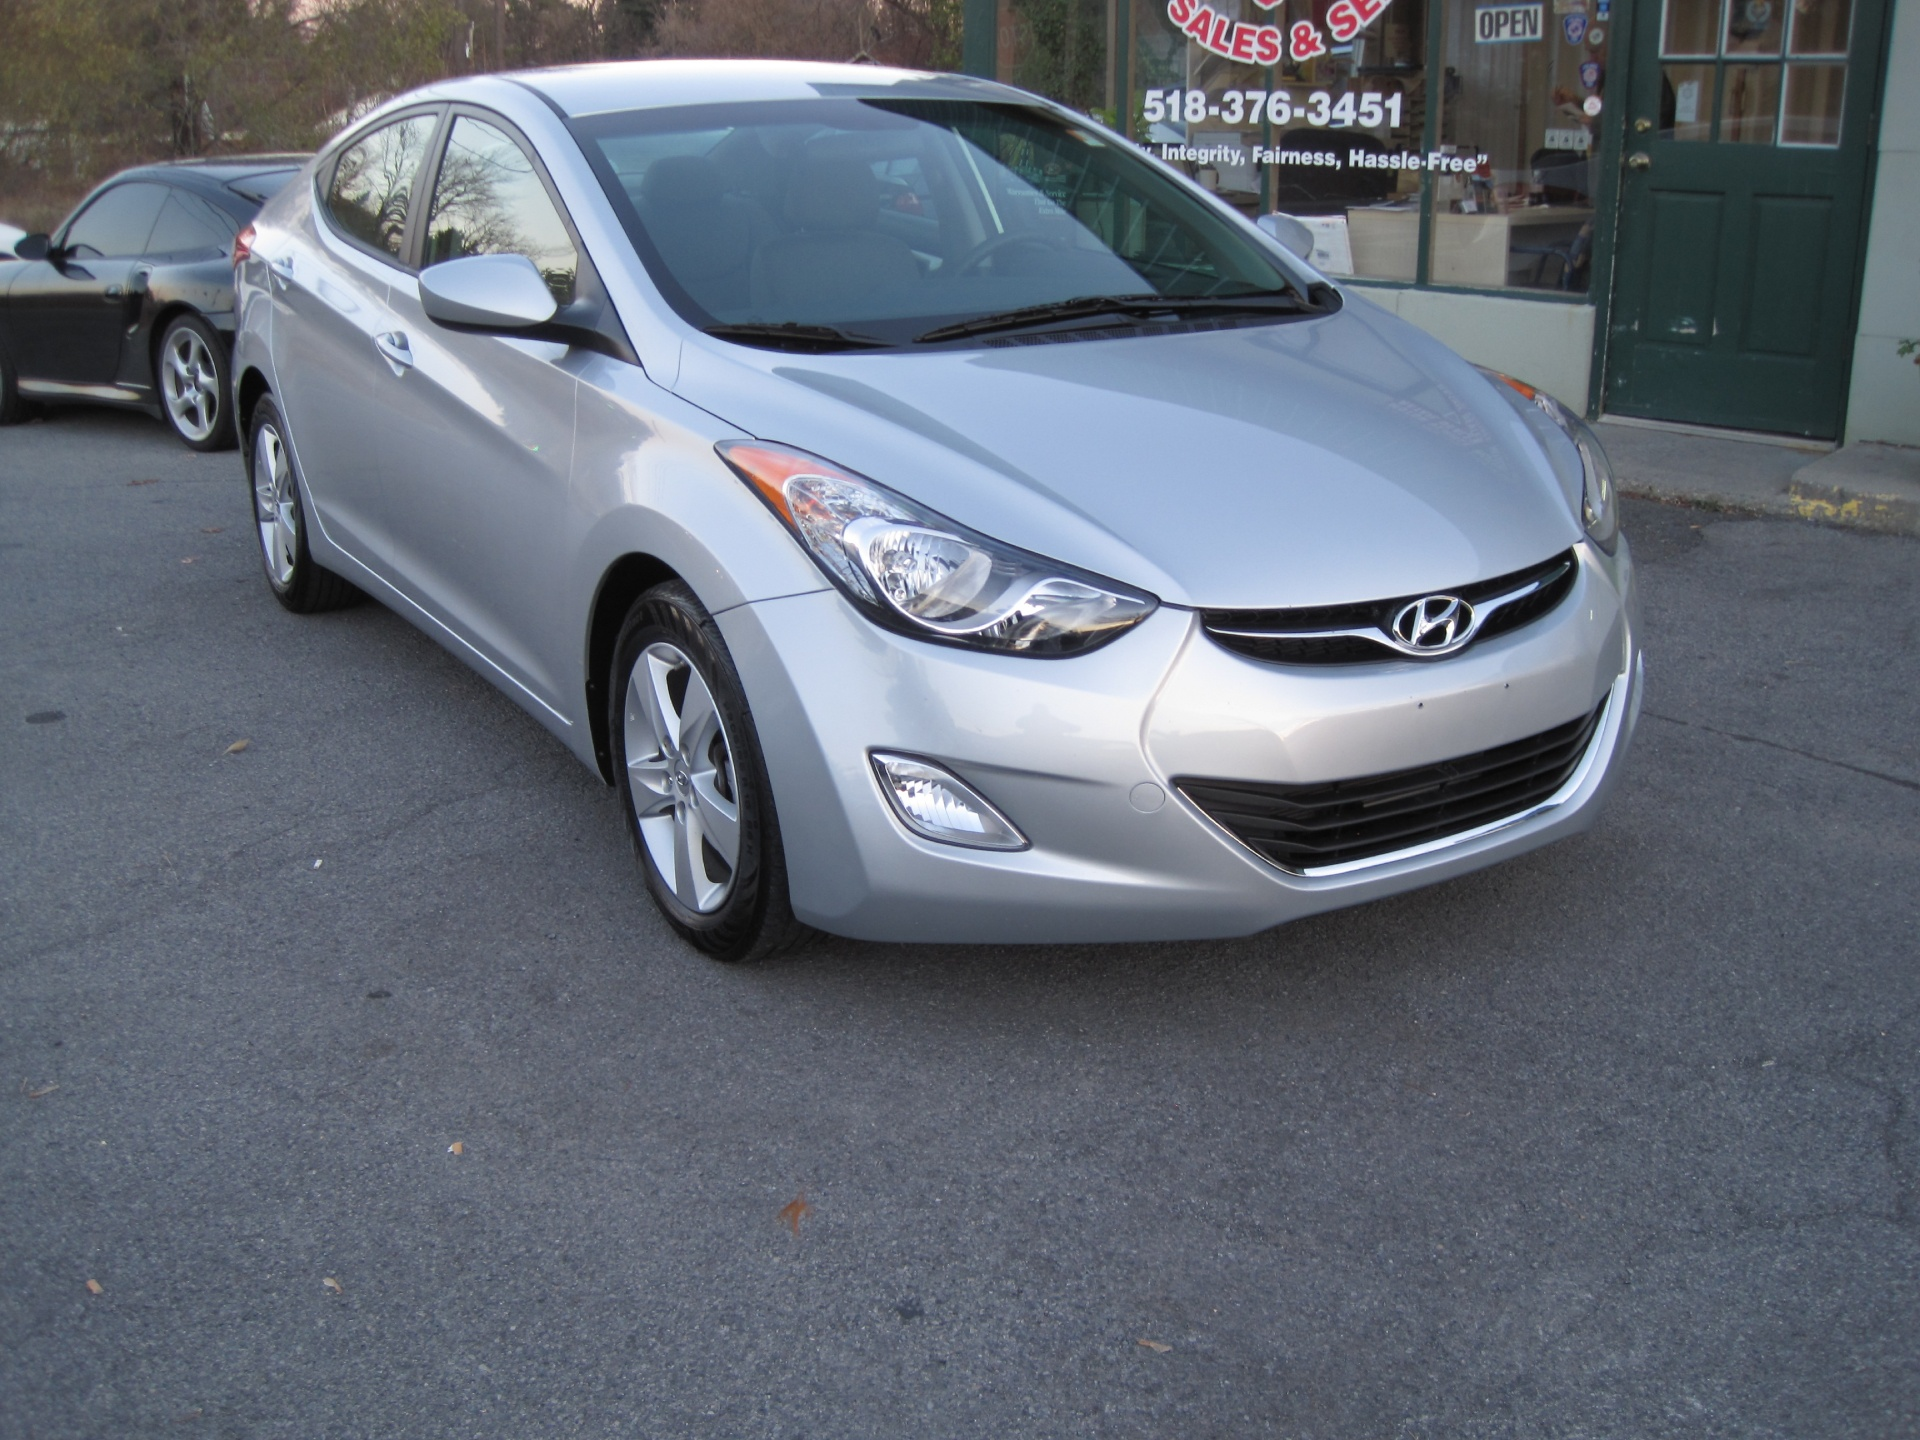 2013 hyundai elantra gls automatic 1 owner trade with us. Black Bedroom Furniture Sets. Home Design Ideas